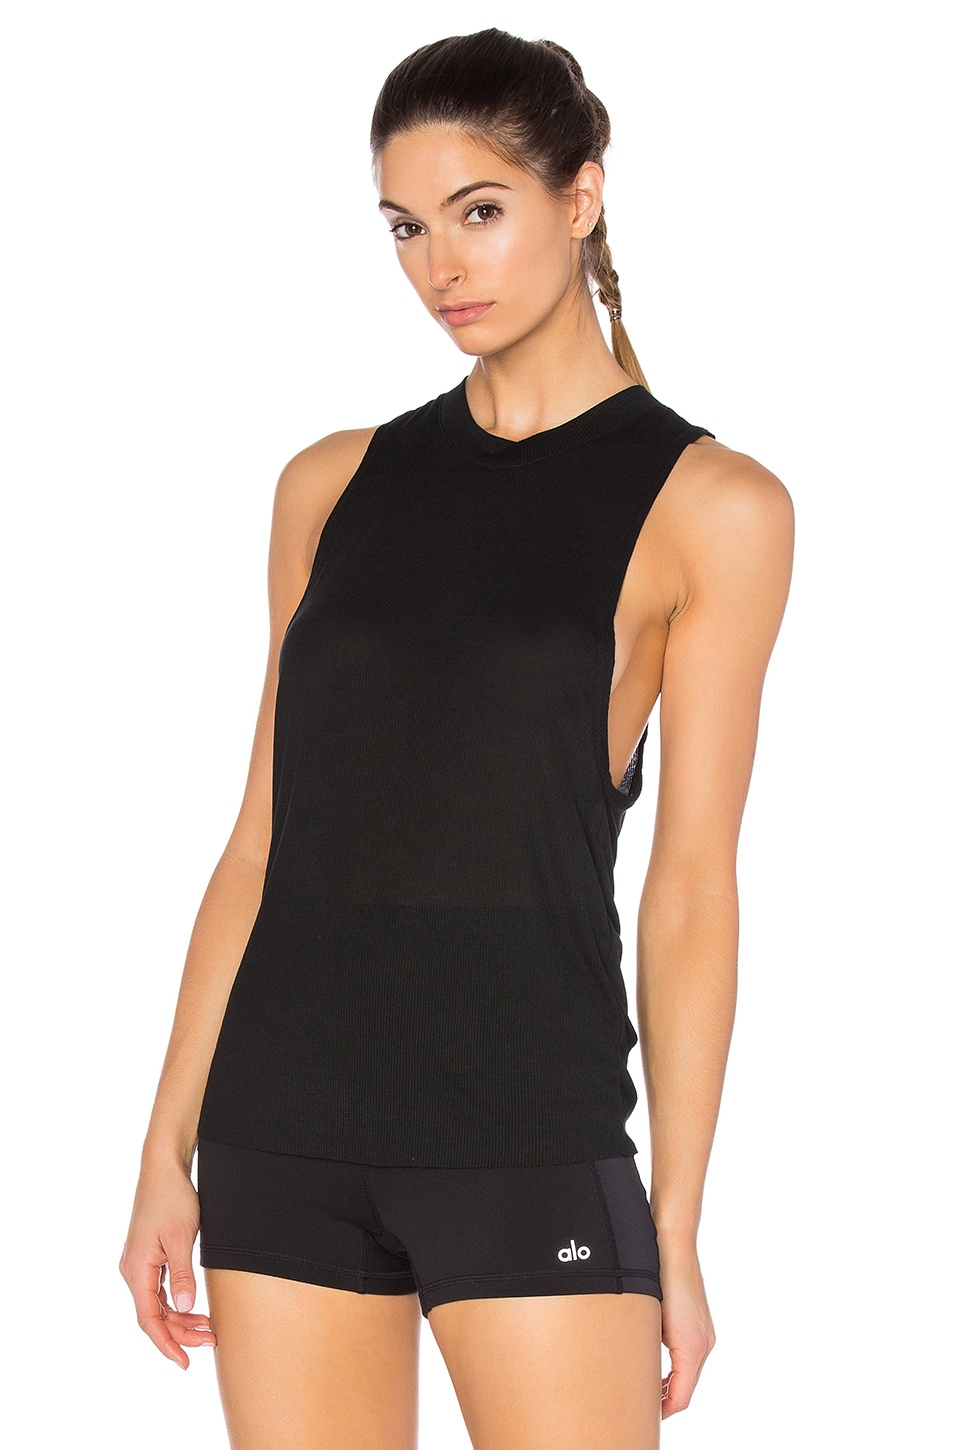 alo Heat Wave Tank in Black